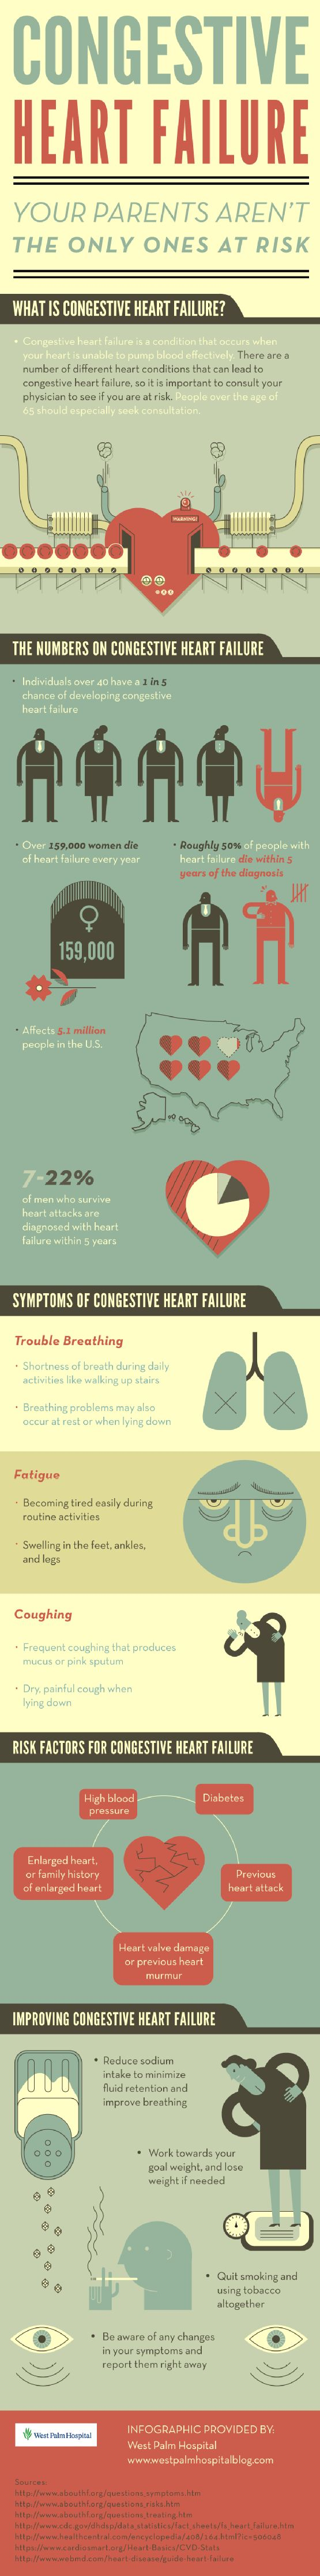 Congestive Heart Failure – Your Parents Aren't the Only Ones at Risk [INFOGRAPHIC]